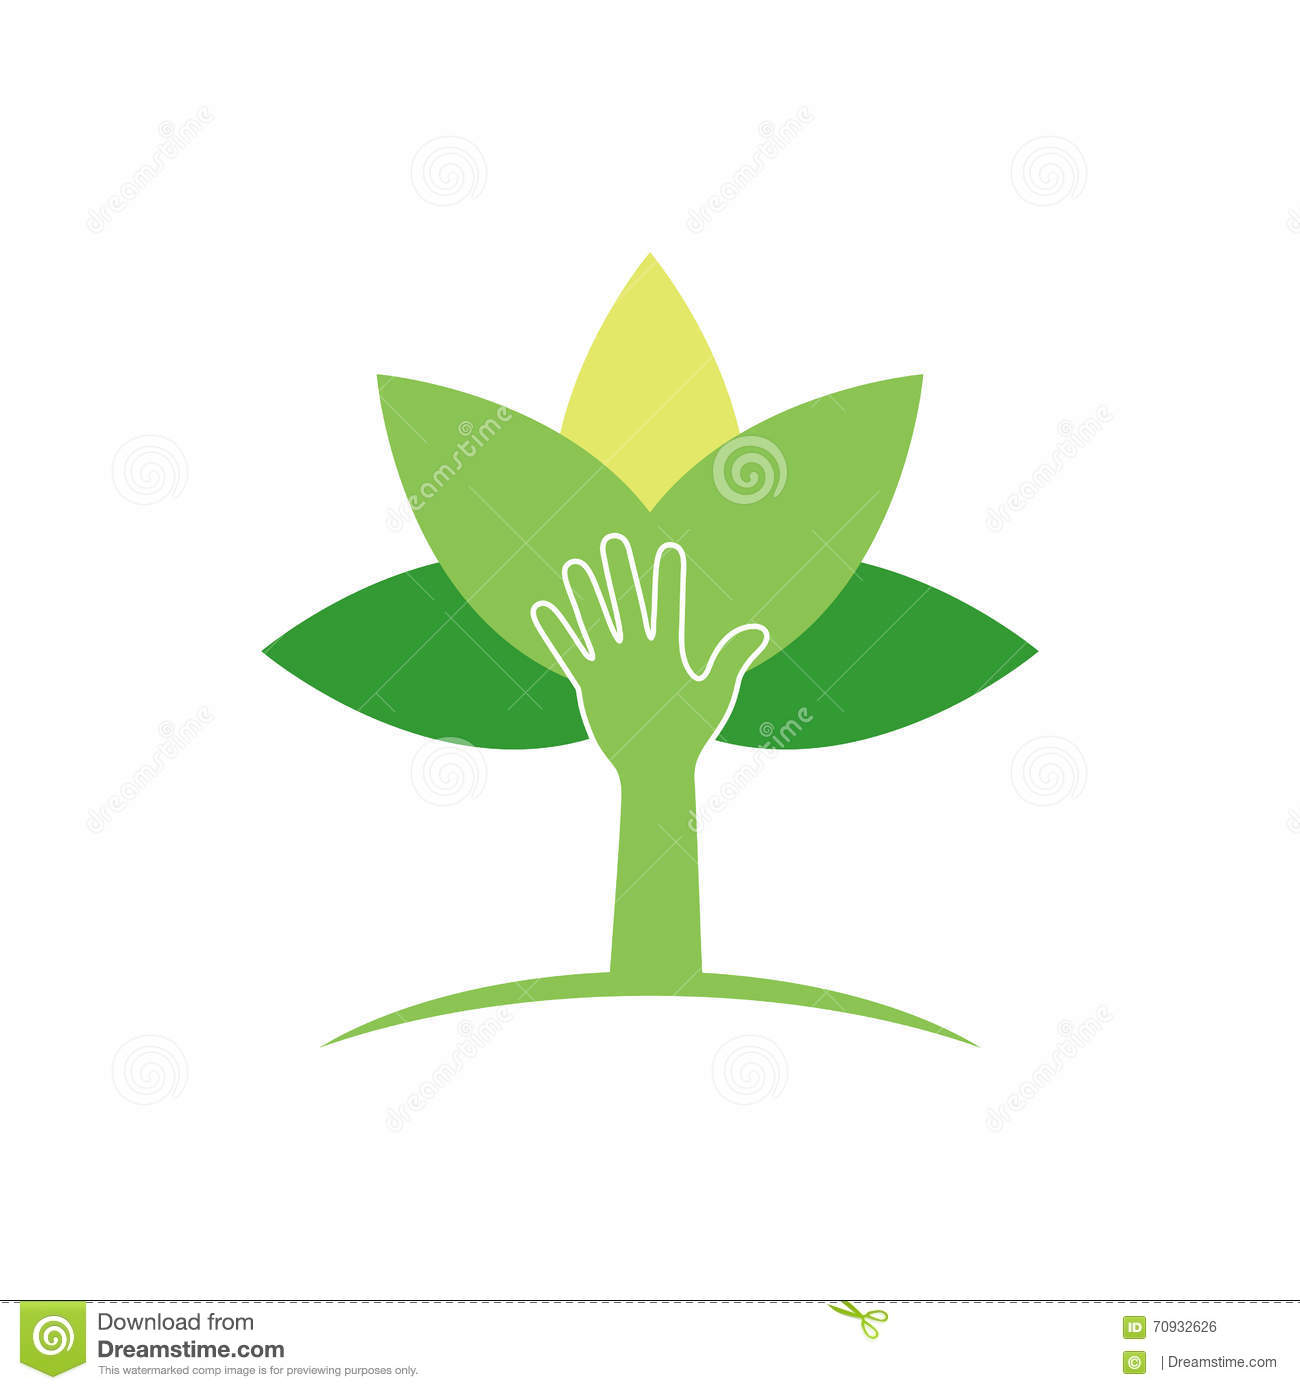 Crop Cultivation Stock Vector - Image: 70932626